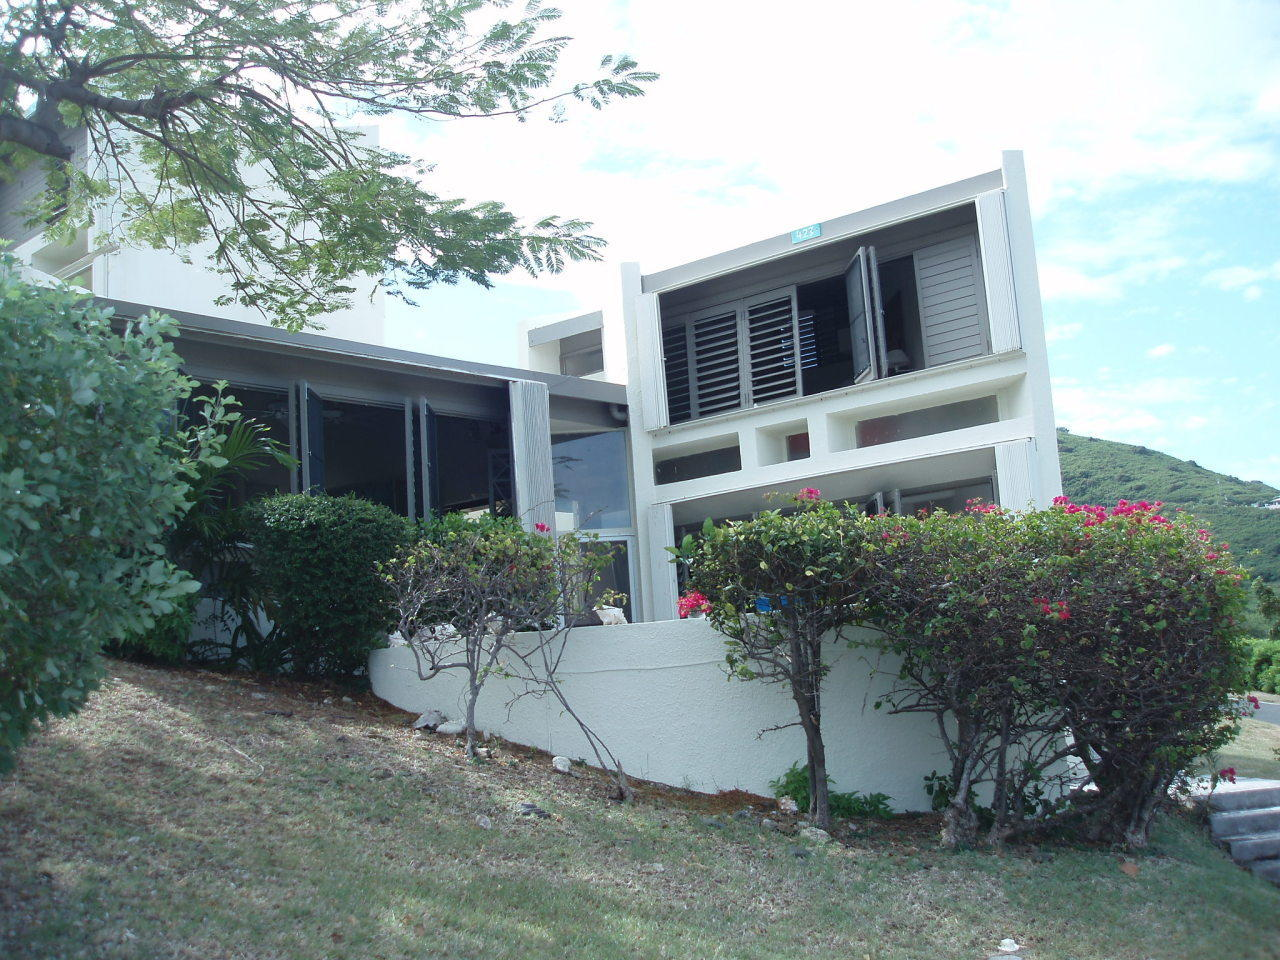 Condominium for Sale at The Reef 423 Teagues Bay EB The Reef 423 Teagues Bay EB St Croix, Virgin Islands 00820 United States Virgin Islands